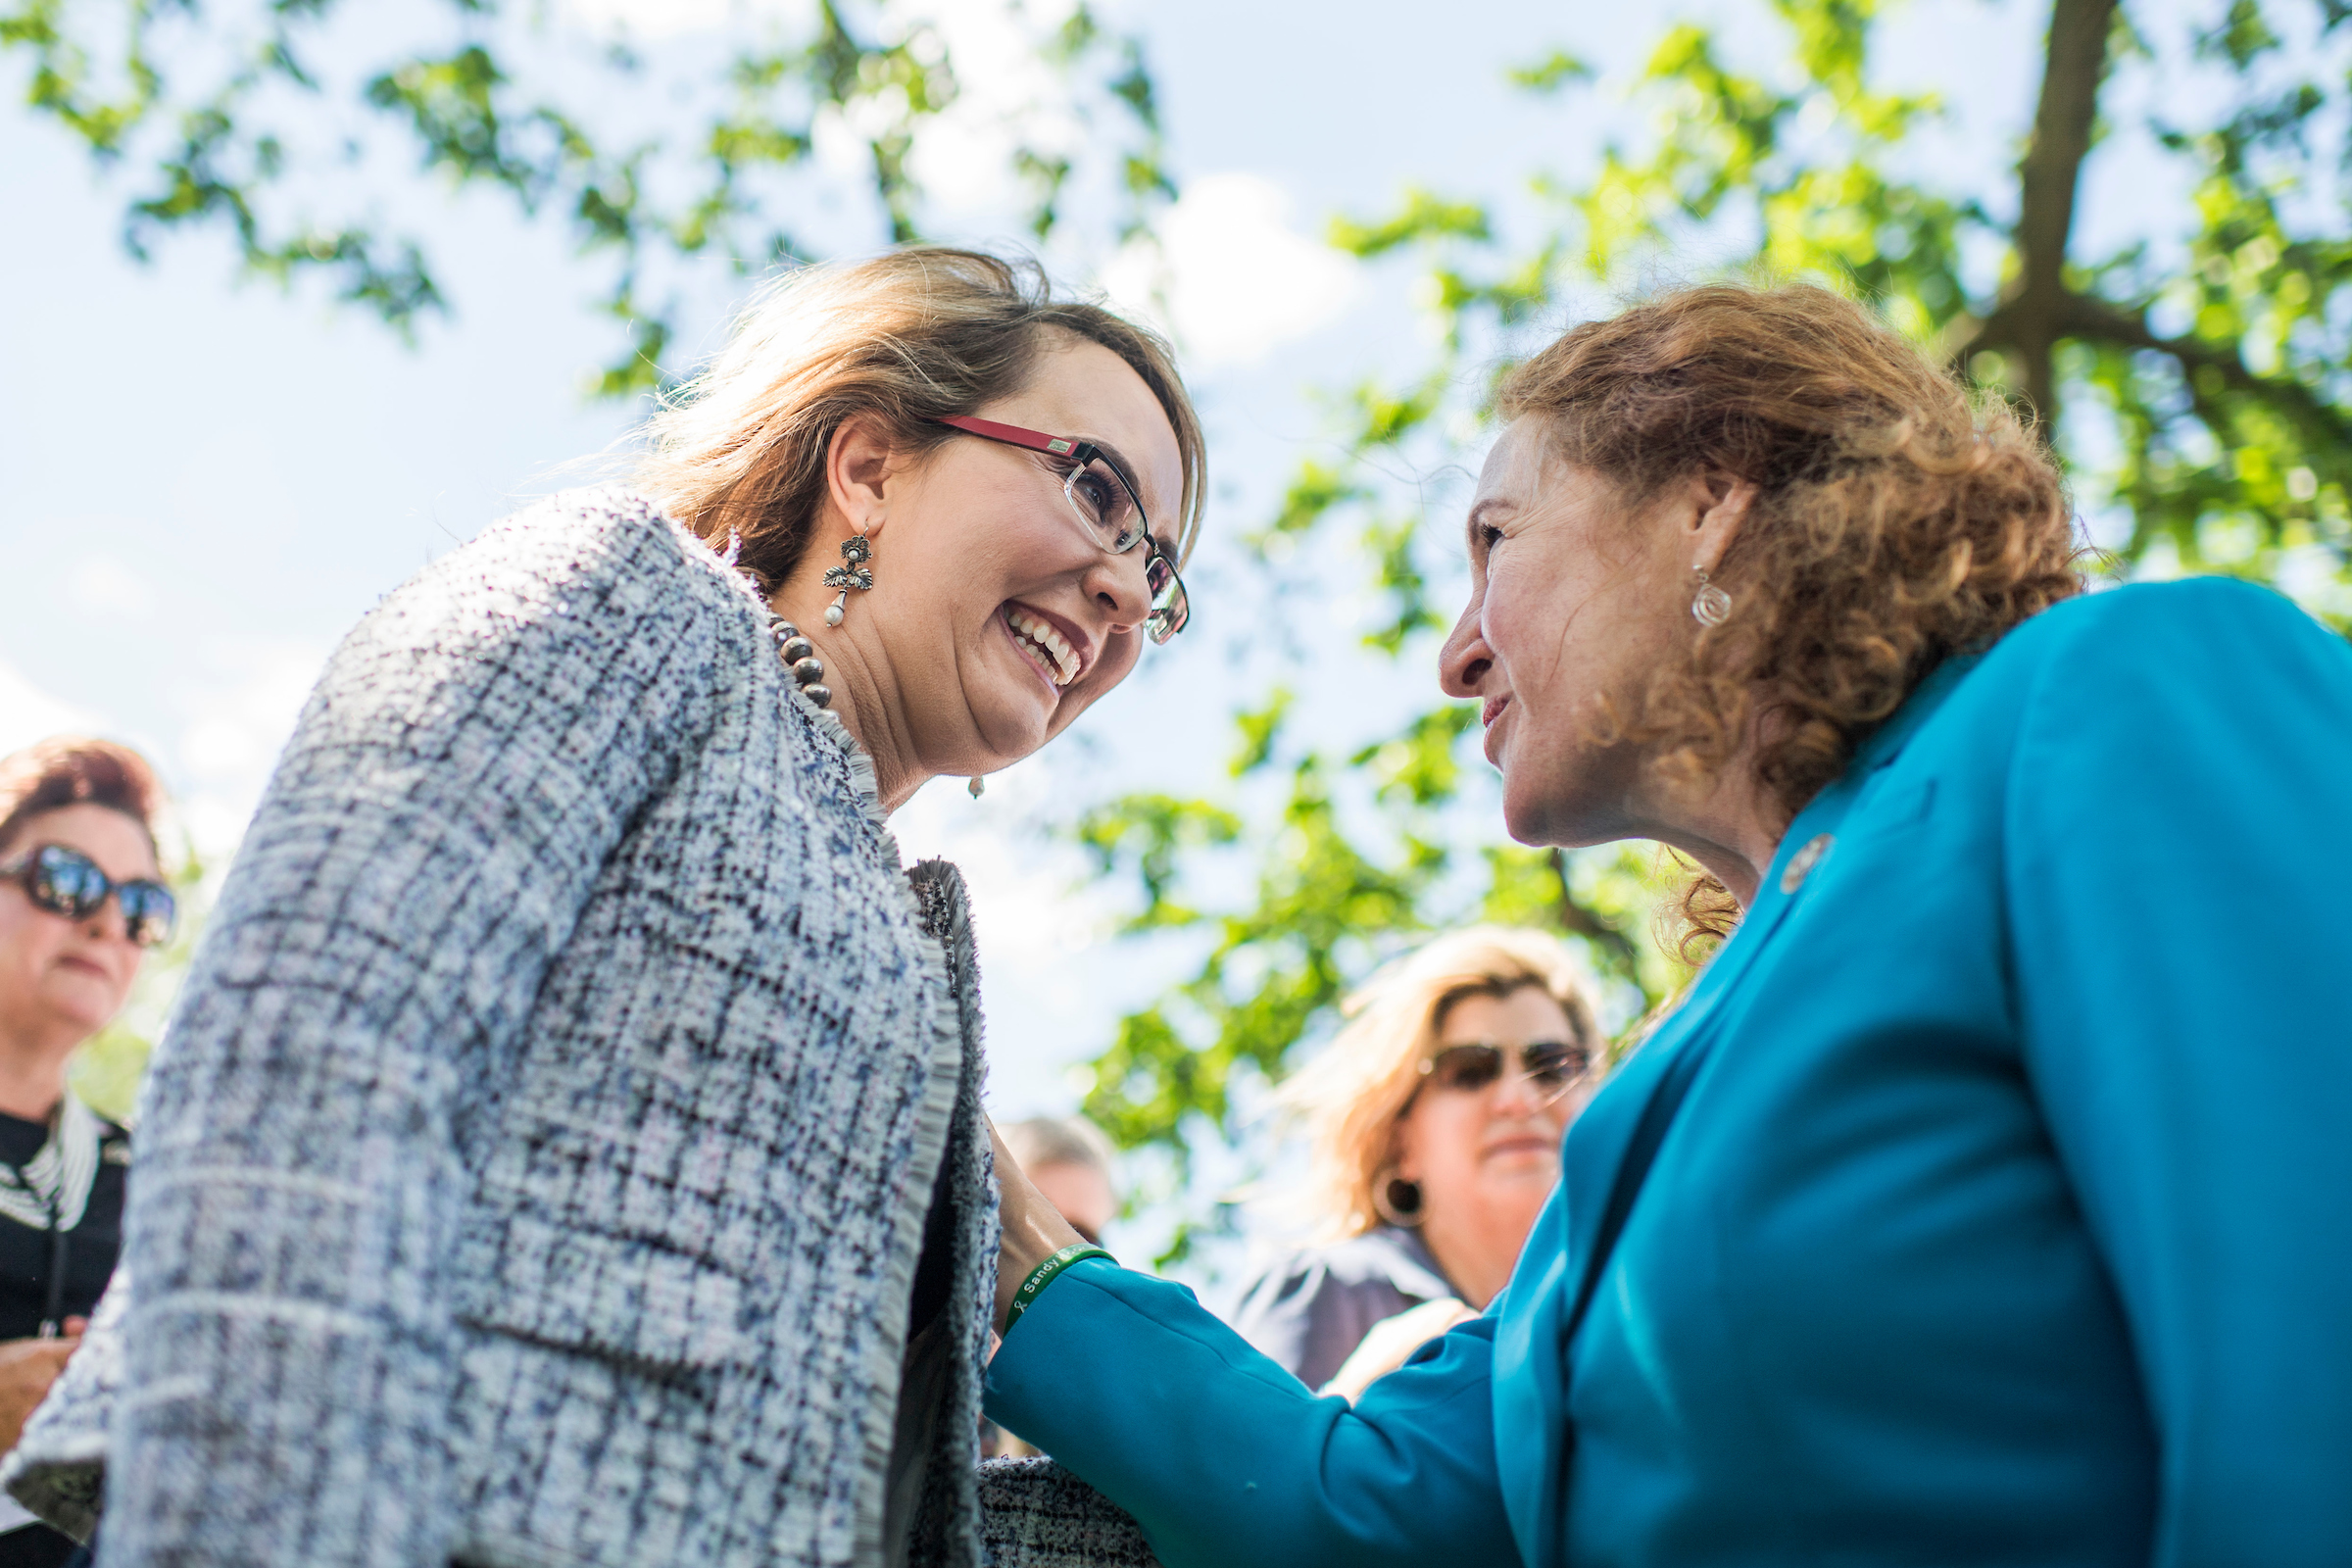 UNITED STATES - MAY 3: Former Rep. Gabrielle Giffords, D-Ariz., left, speaks with Rep. Elizabeth Esty, D-Conn., before a news conference with Americans for Responsible Solutions and the Brady Campaign to Prevent Gun Violence to call on Congress to address the issue and resist the agenda of gun lobbies on May 3, 2017. (Photo By Tom Williams/CQ Roll Call)